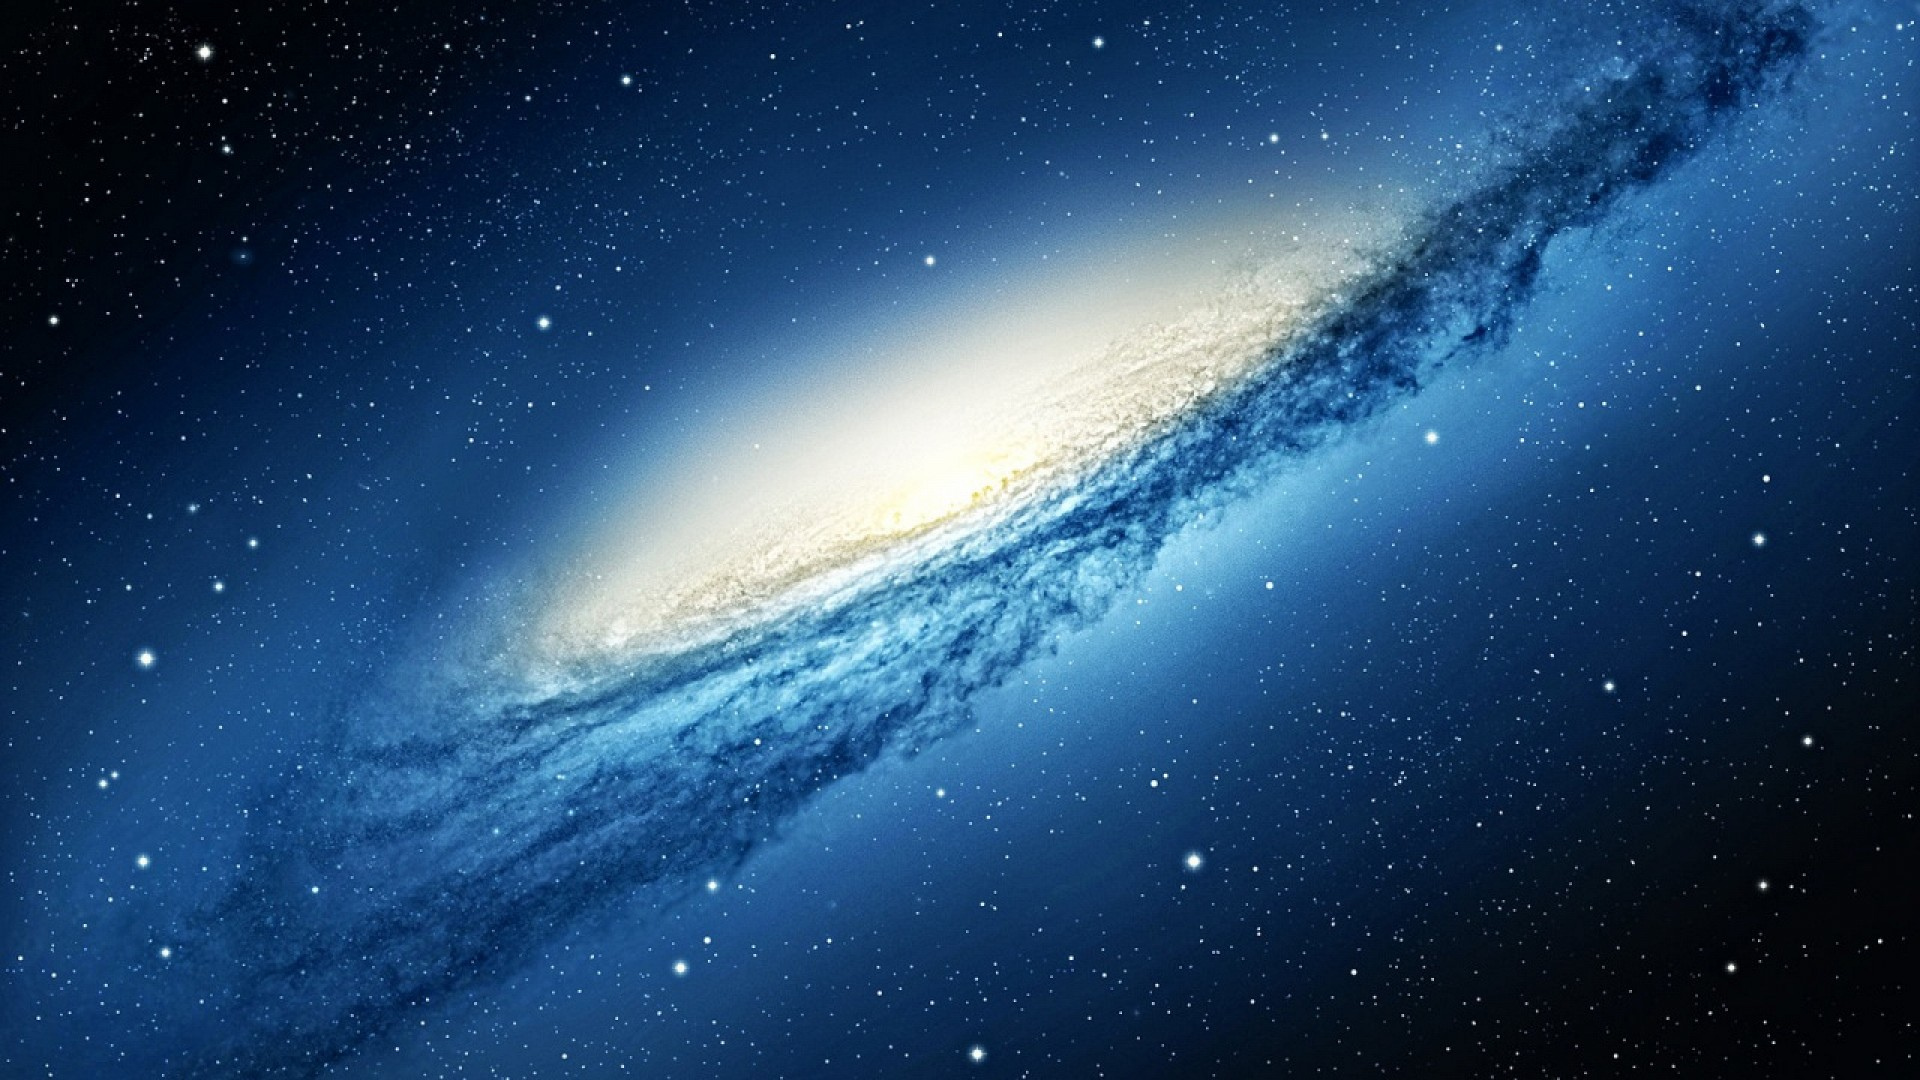 Cosmic Wallpaper